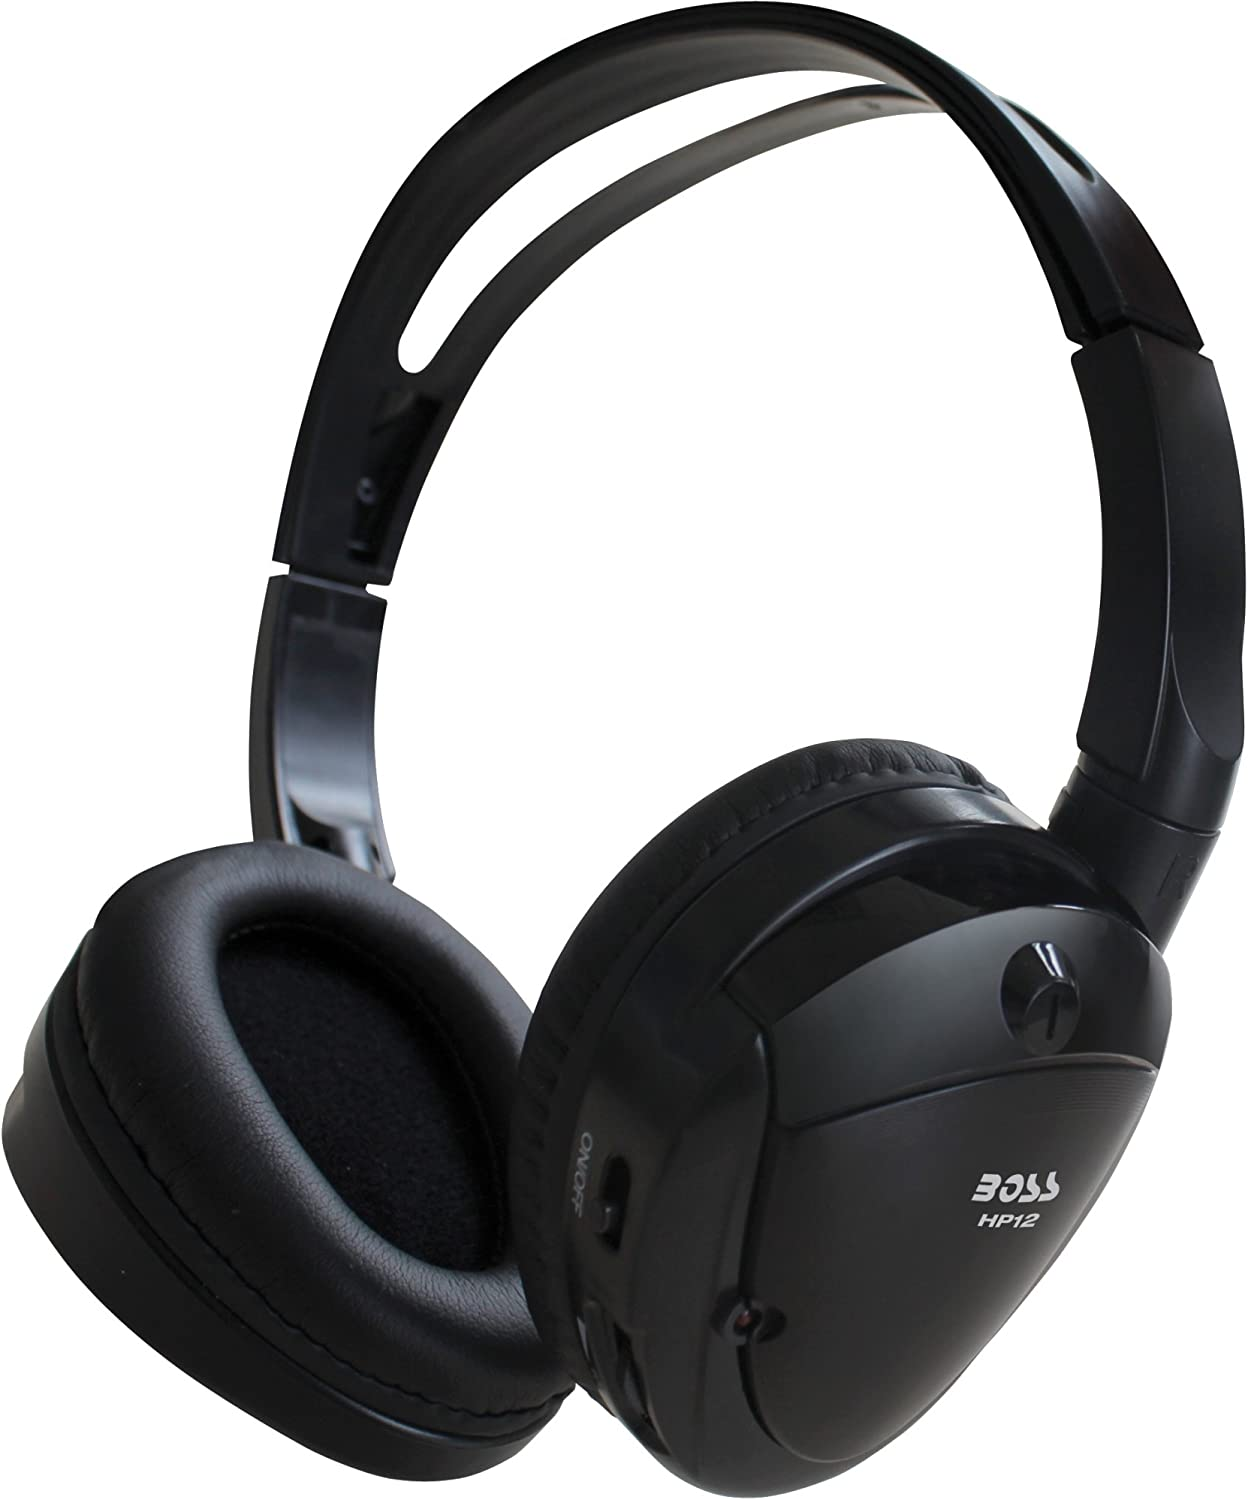 BOSS AUDIO HP12 / Infrared Foldable Cordless Headphone /Stereo - Wireless - Infrared - 30 Hz 20 kHz - 60 dB SNR - Over-the-head - Binaural - Ear-cup